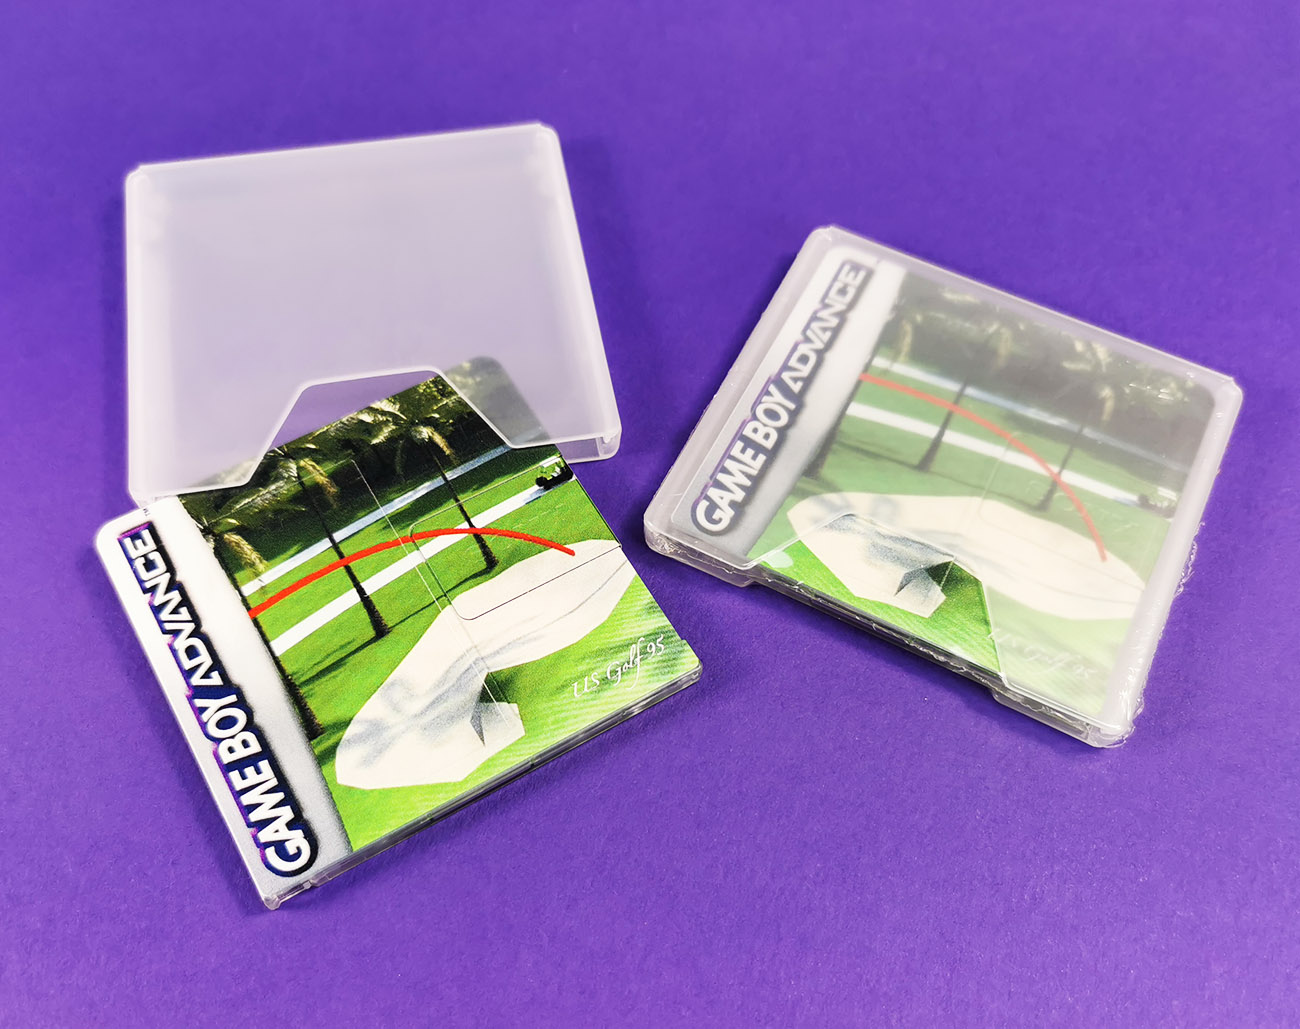 US Golf 95 Game Boy Advance MiniDiscs in slipcases